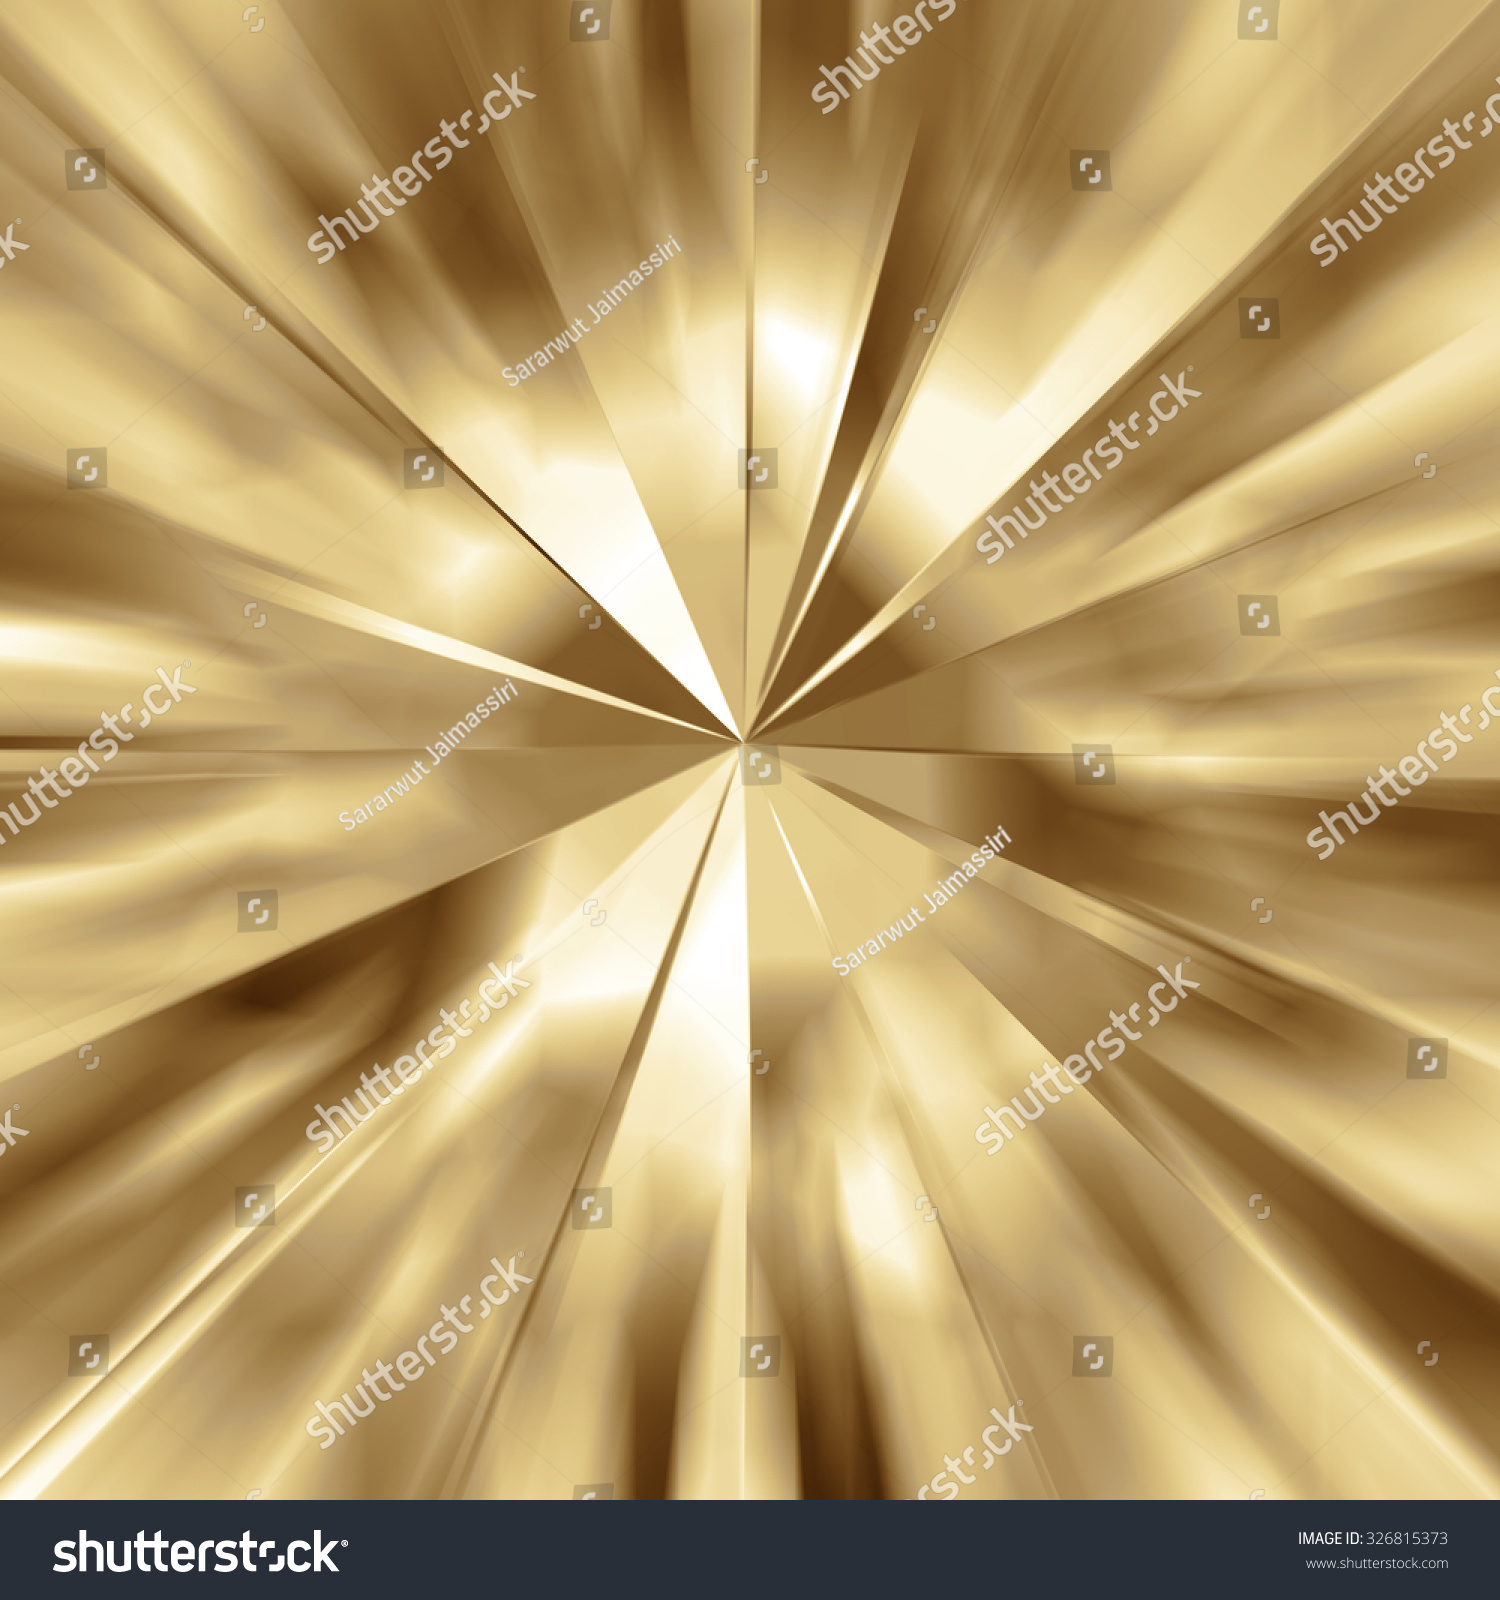 stock photo zoom light golden explosion background abstract illustration